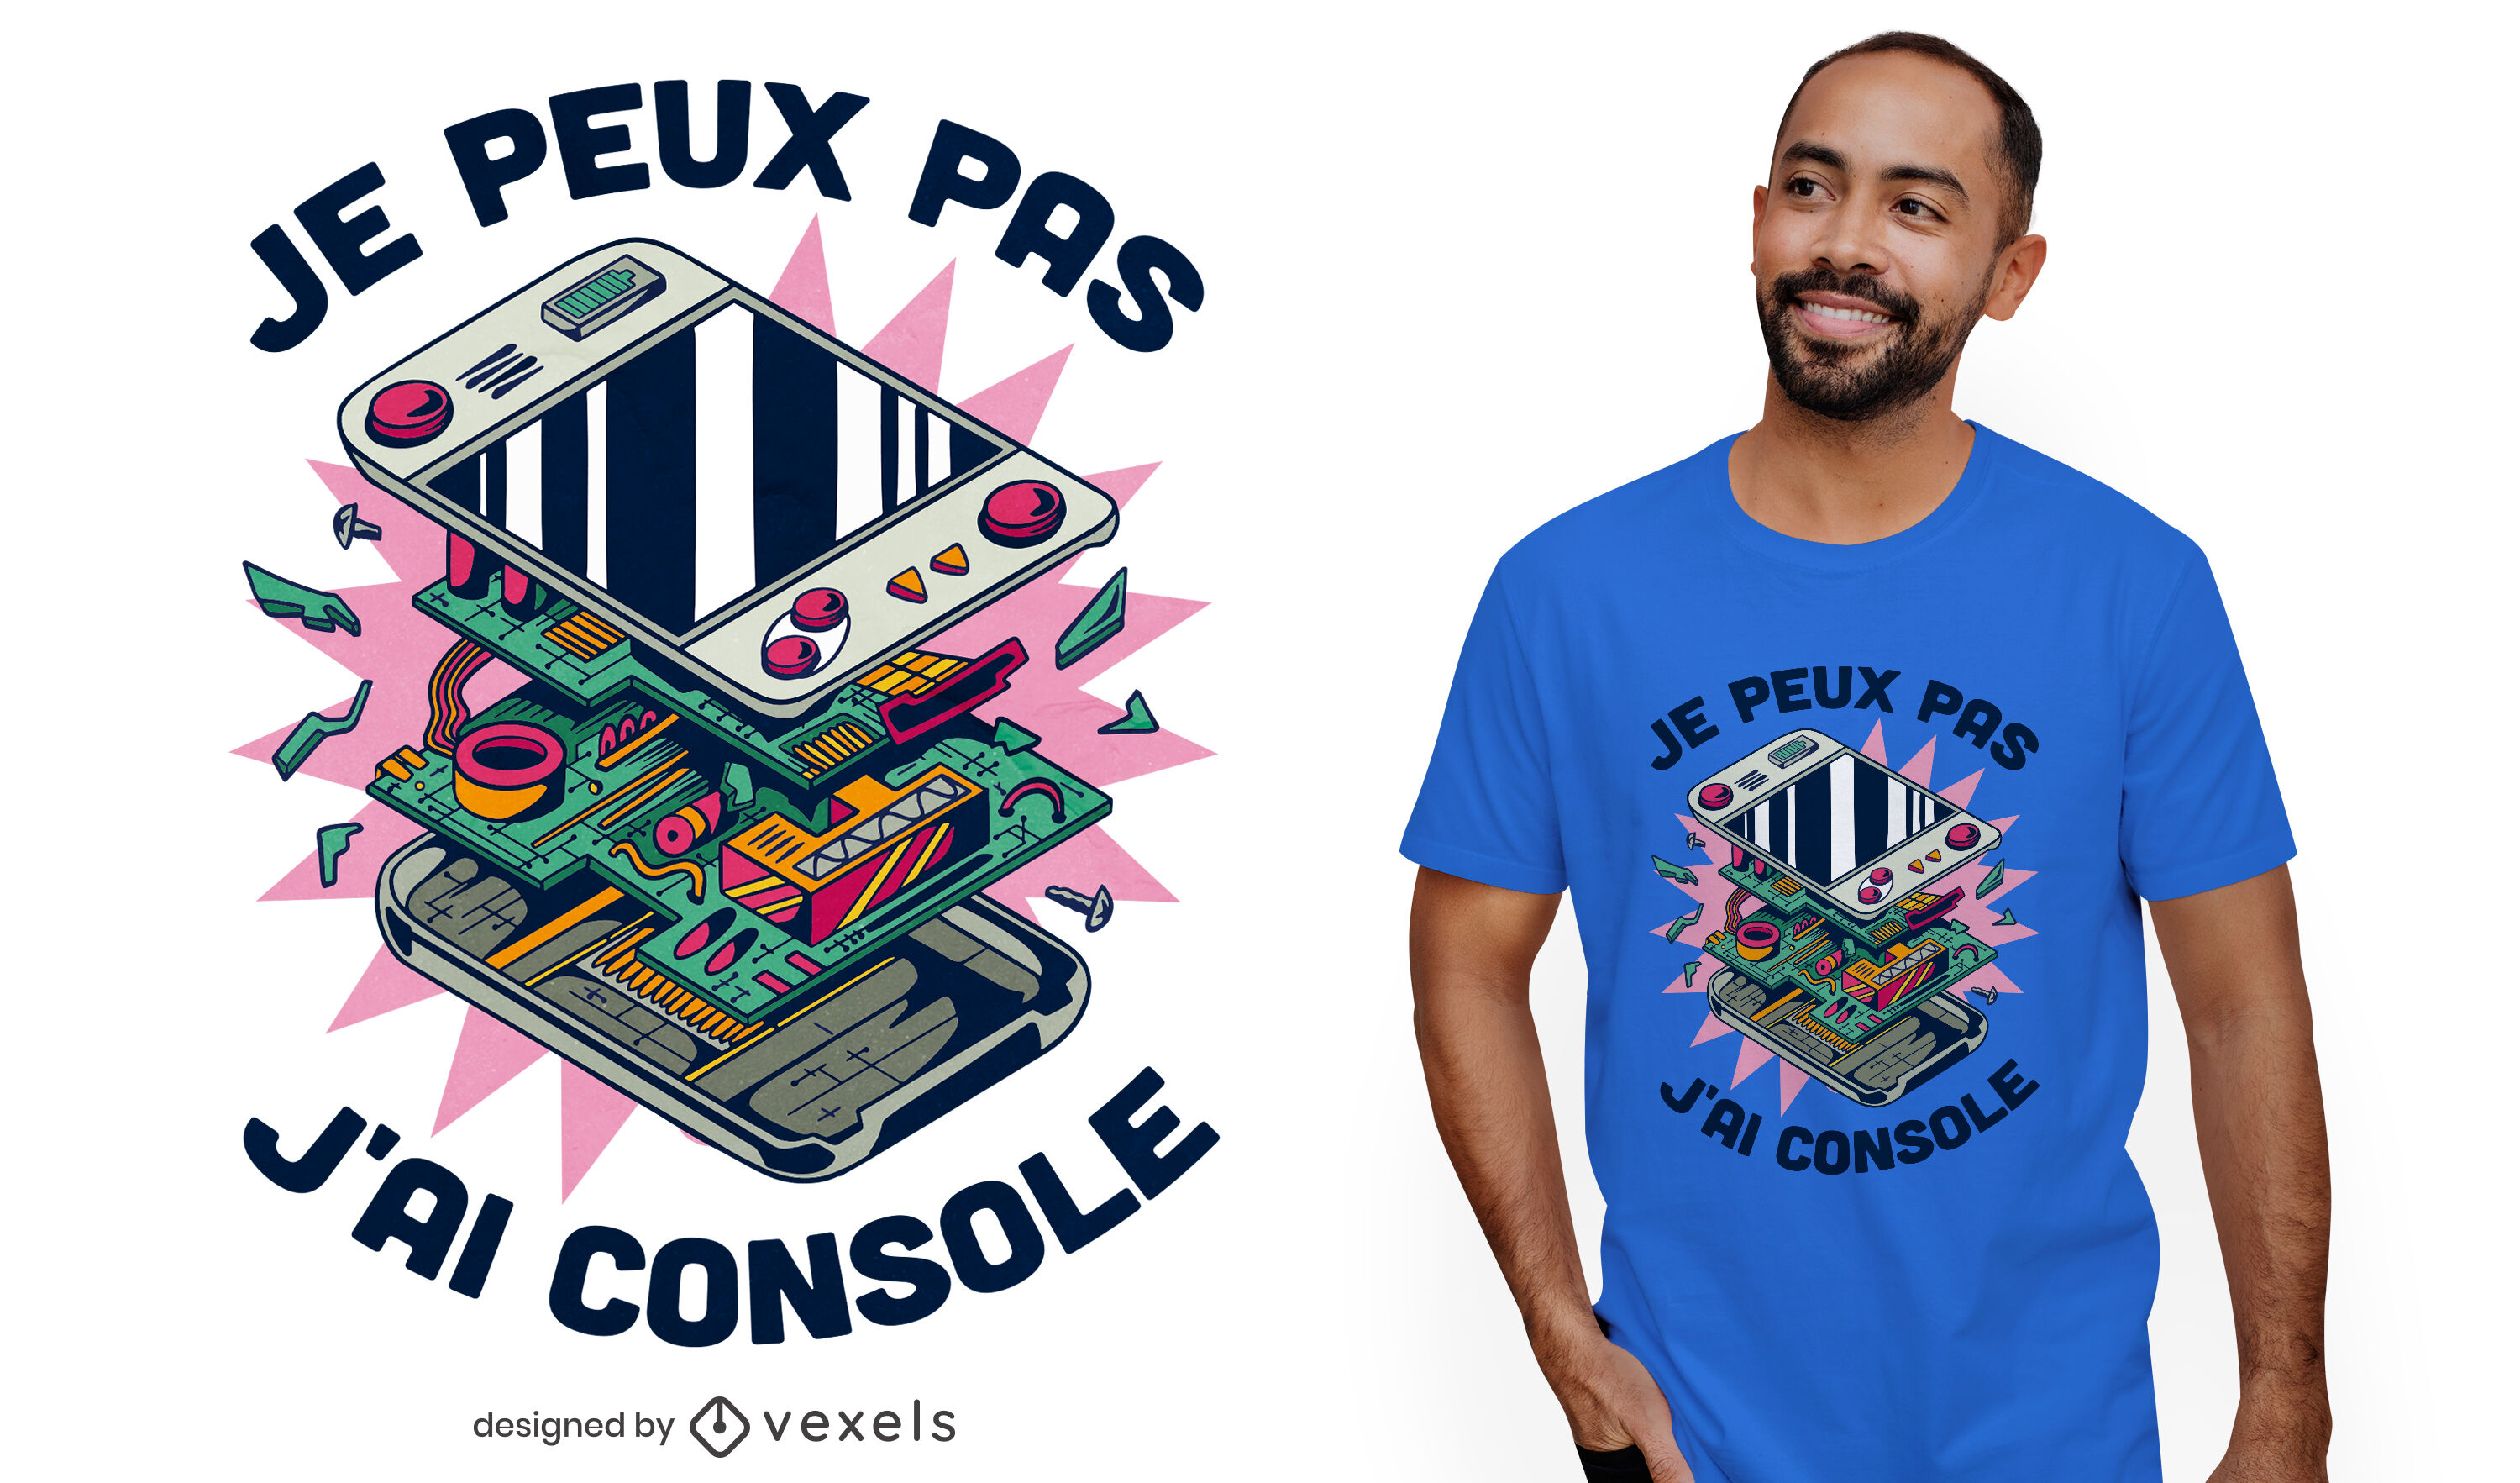 Gaming console french quote t-shirt design